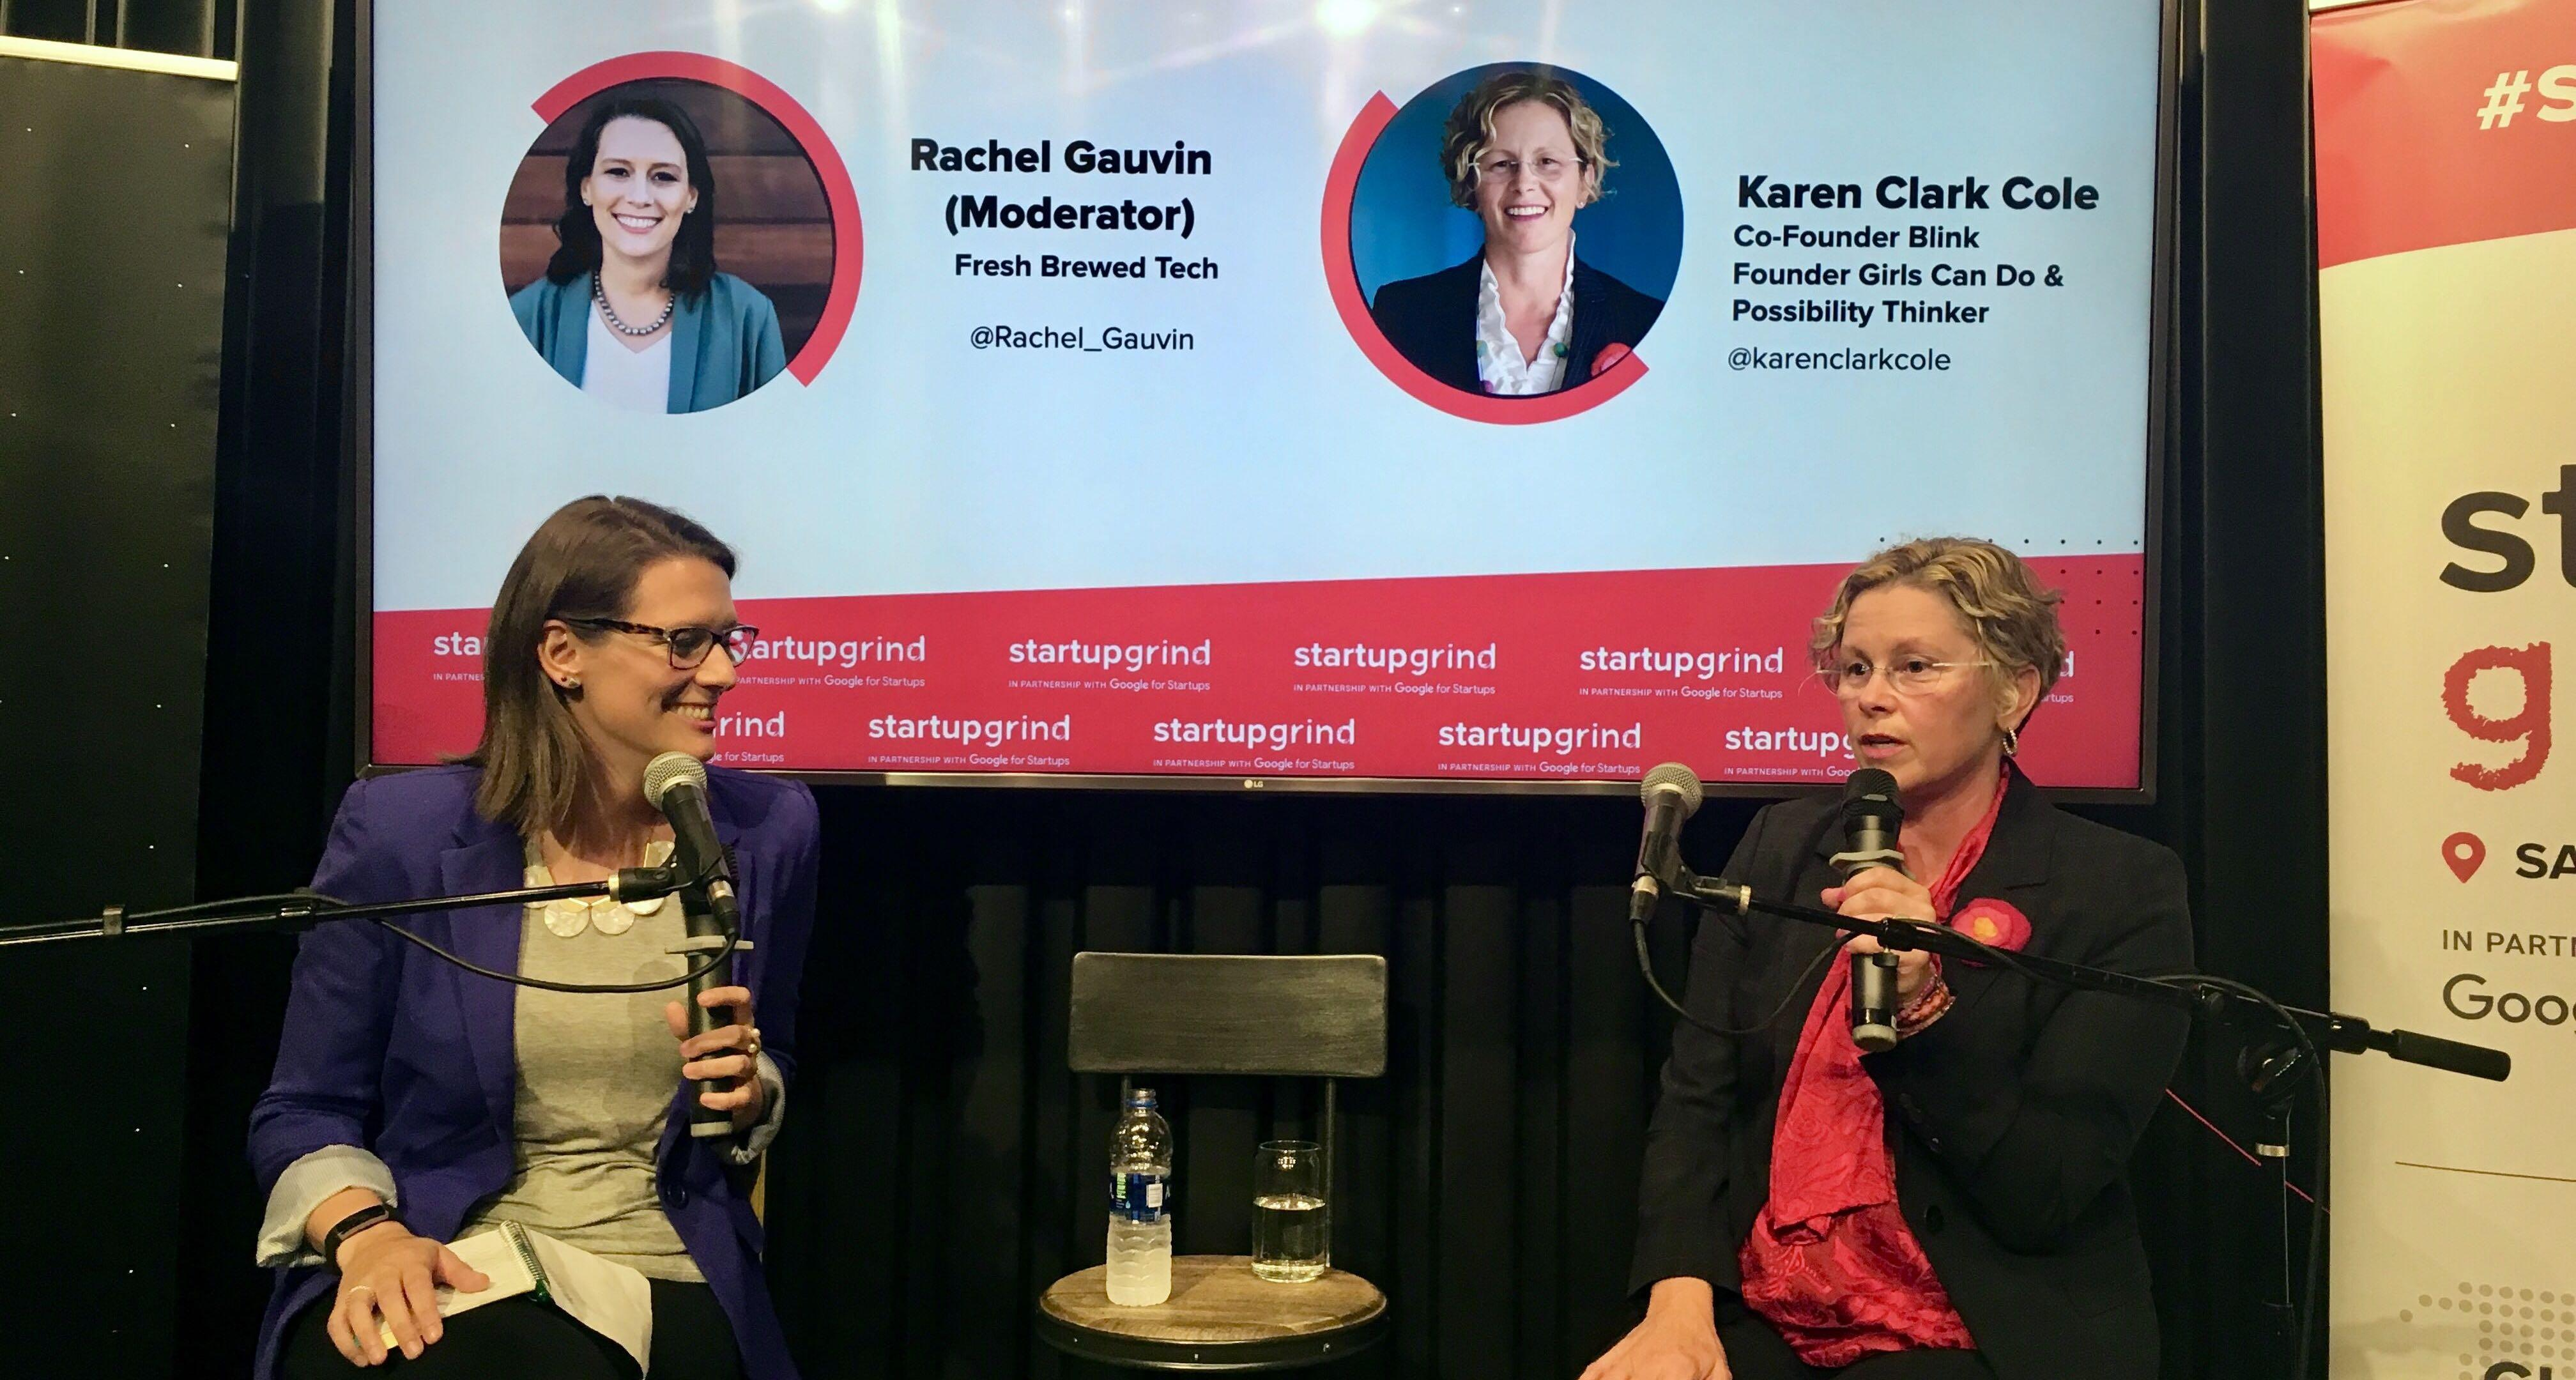 Startup Grind & Fresh Brewed Tech: Karen Clark Cole Interview